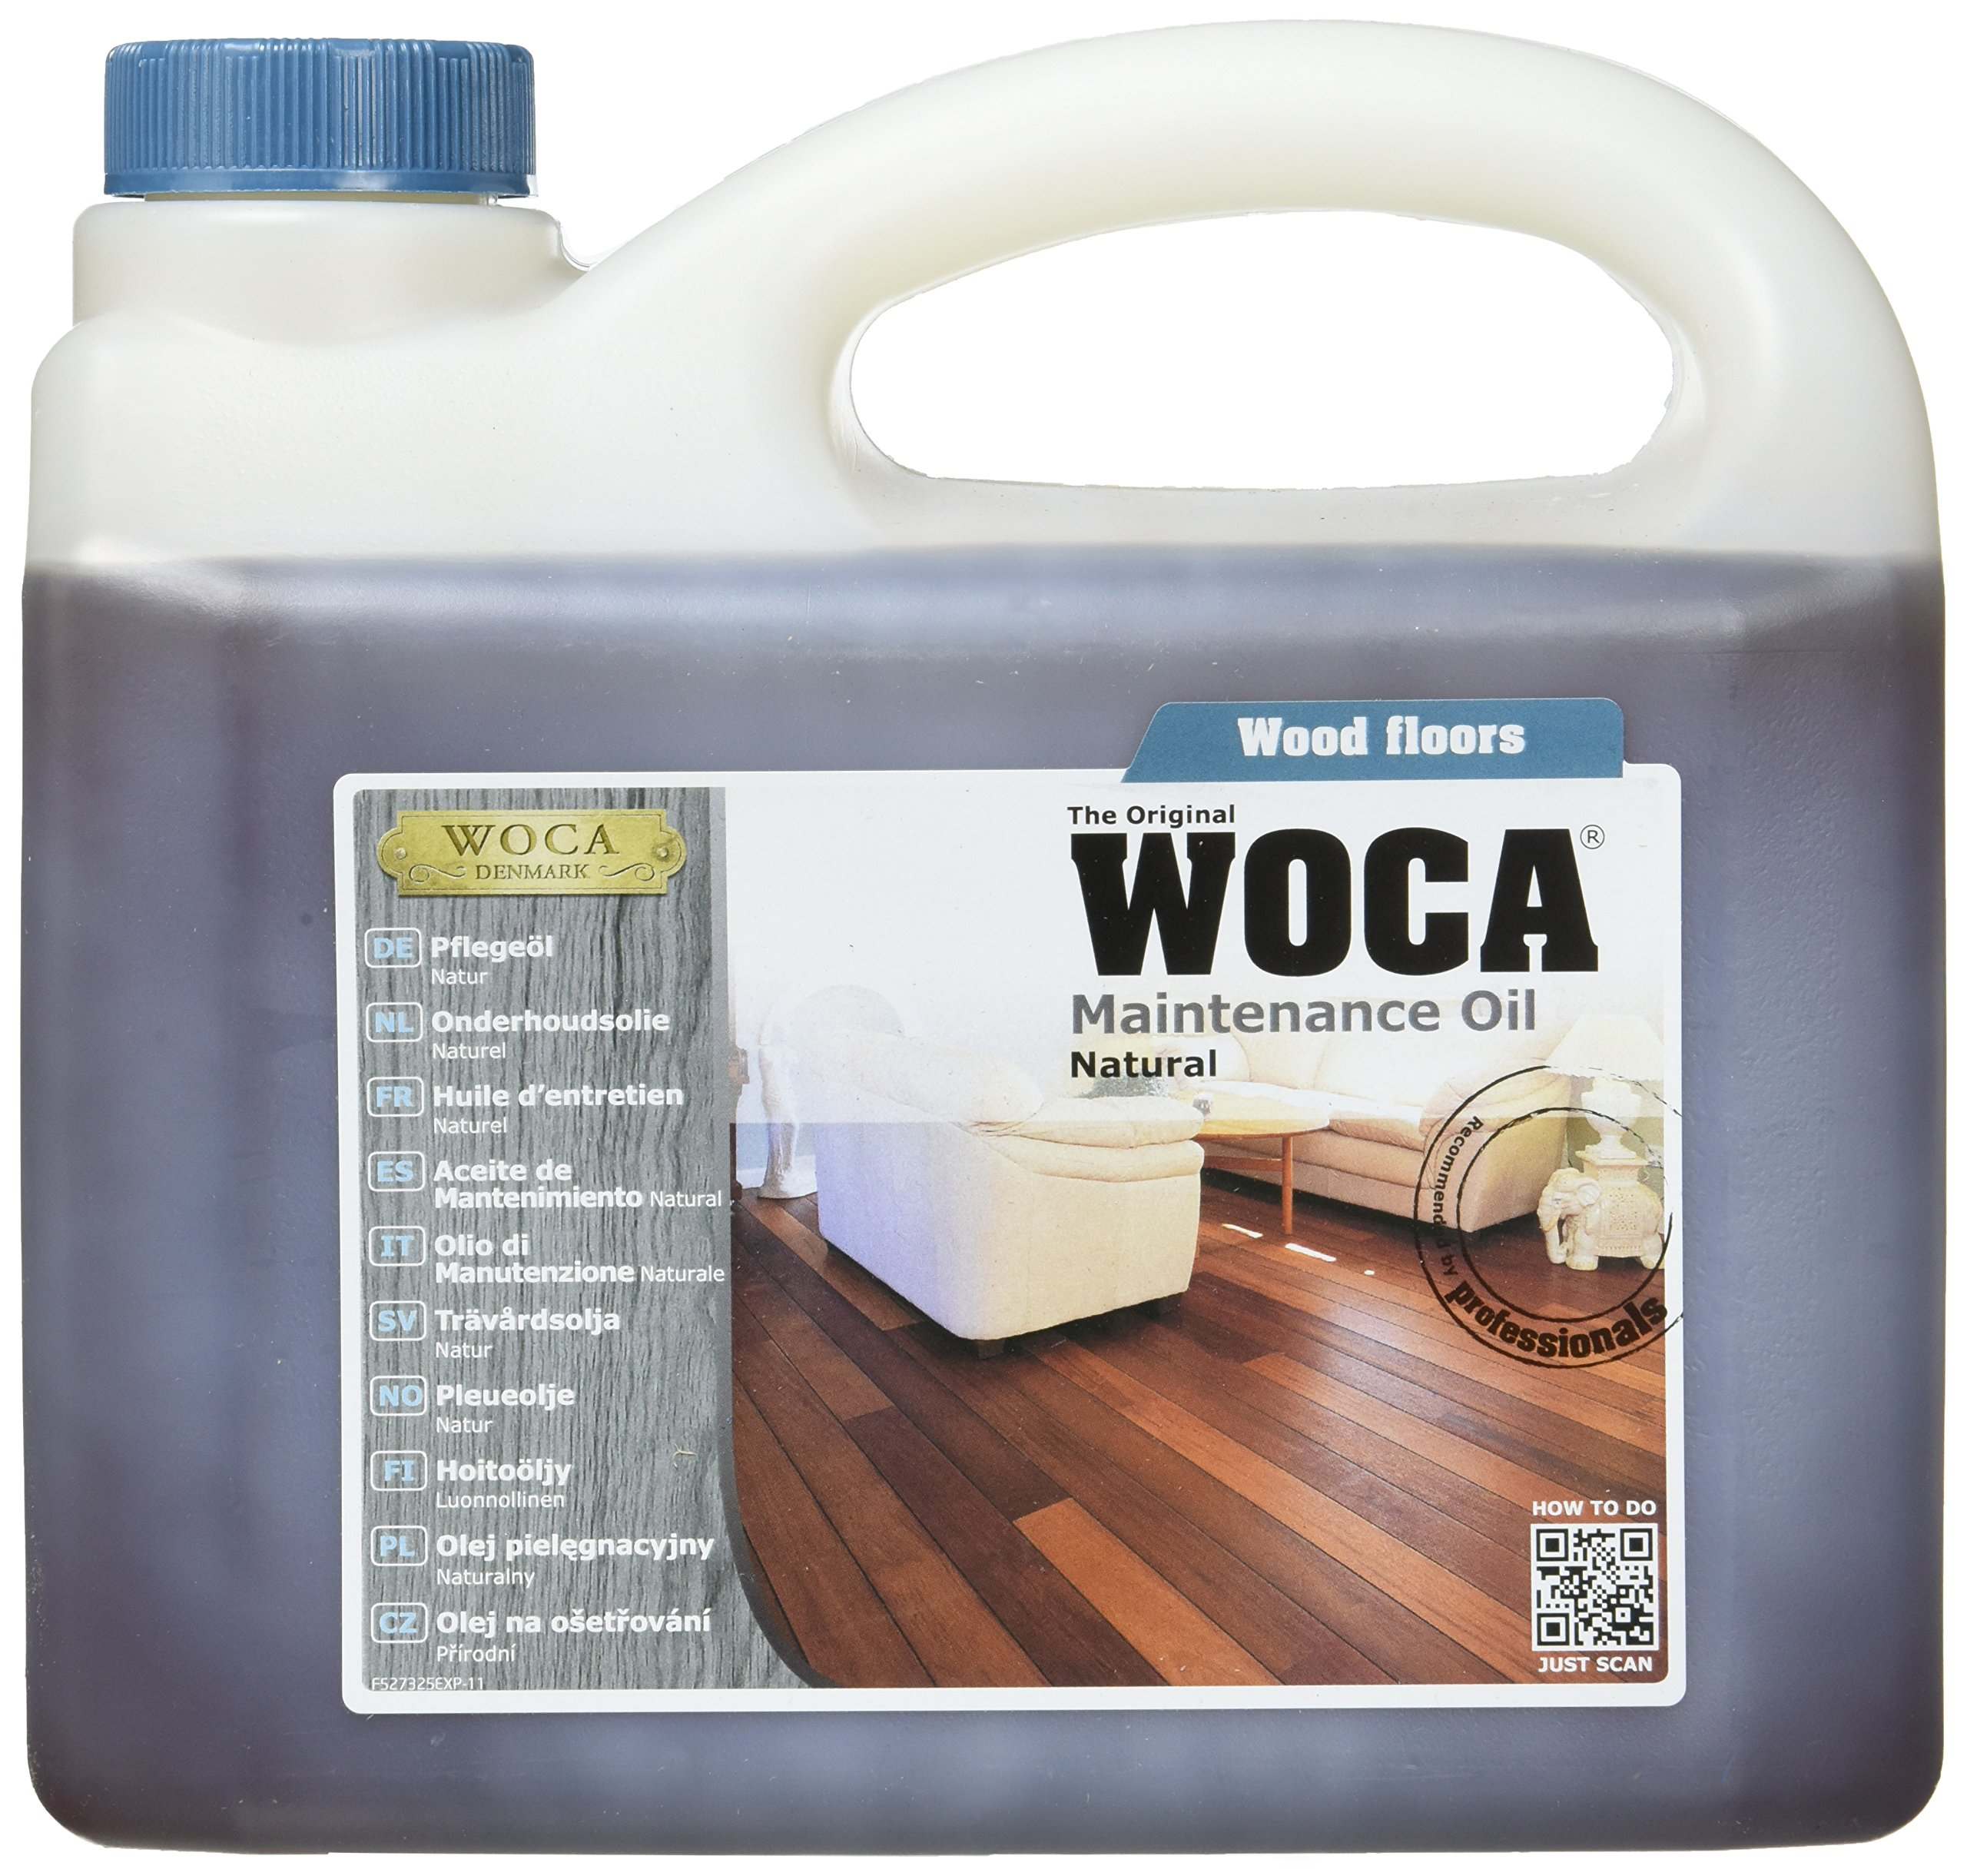 Woca Maintenance Oil - Natural (2.5 liter) by Woca (Image #1)